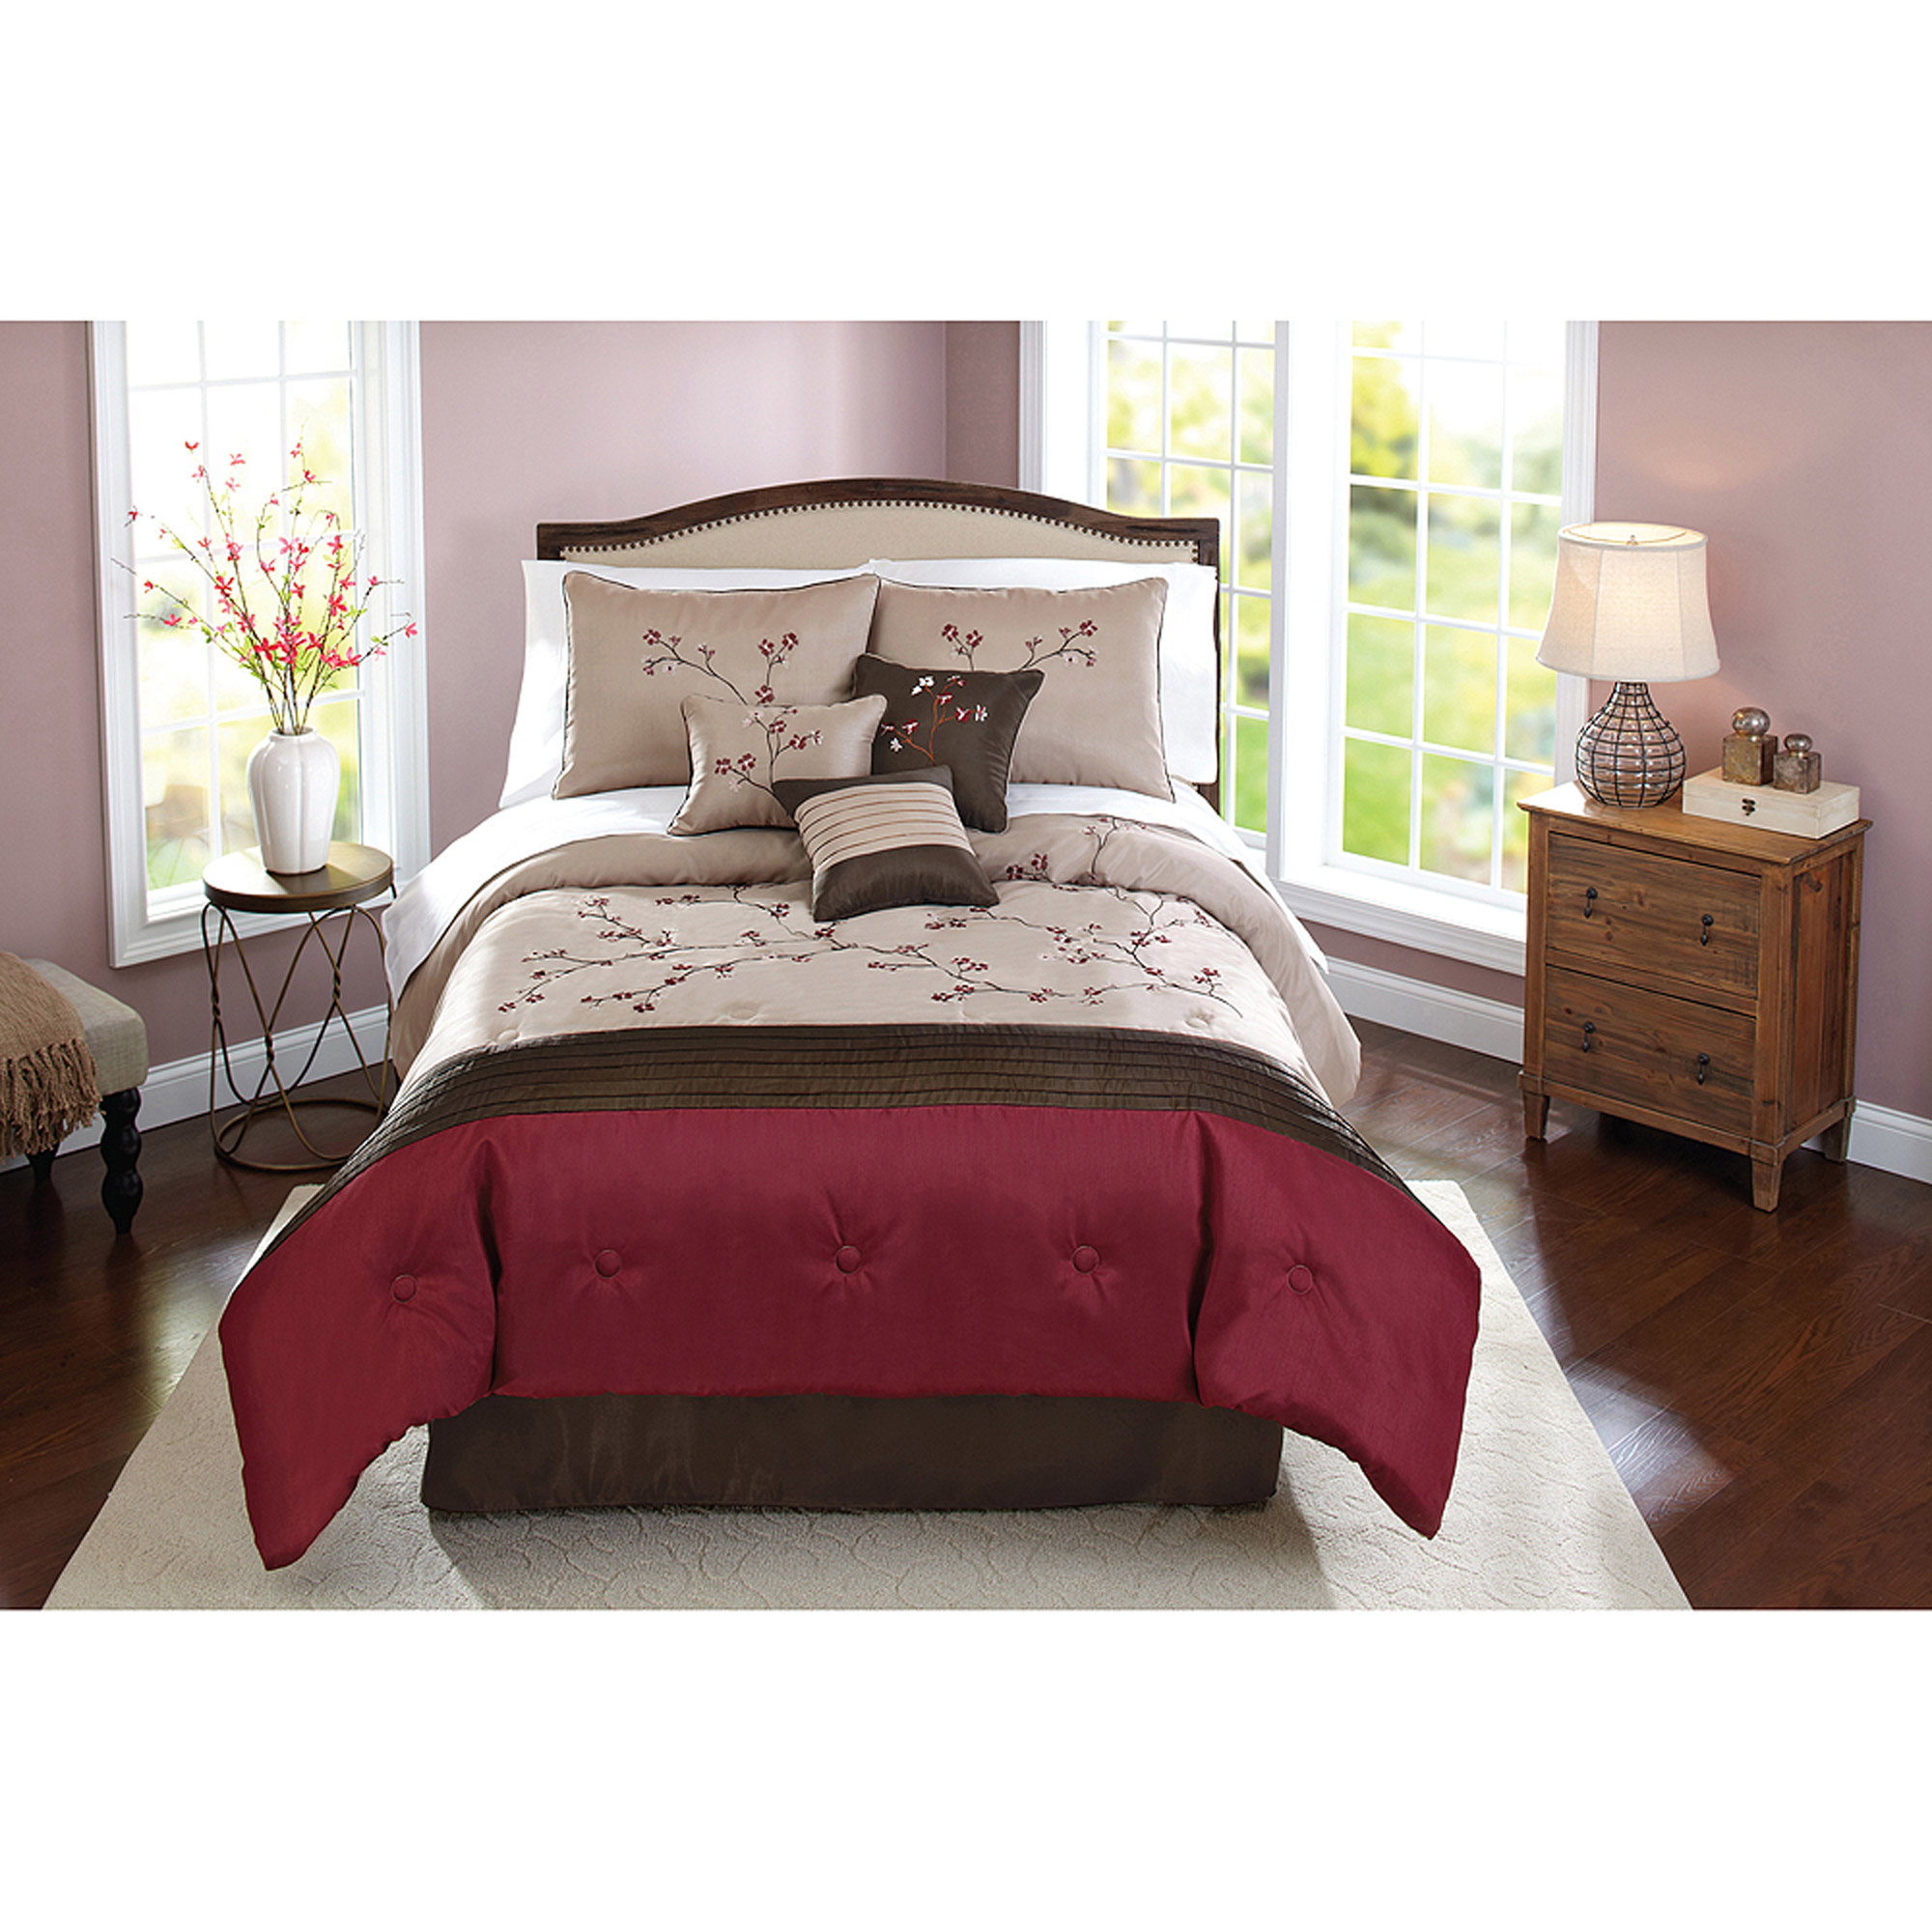 Better Homes & Gardens Full Therese Comforter Set, 7 Piece